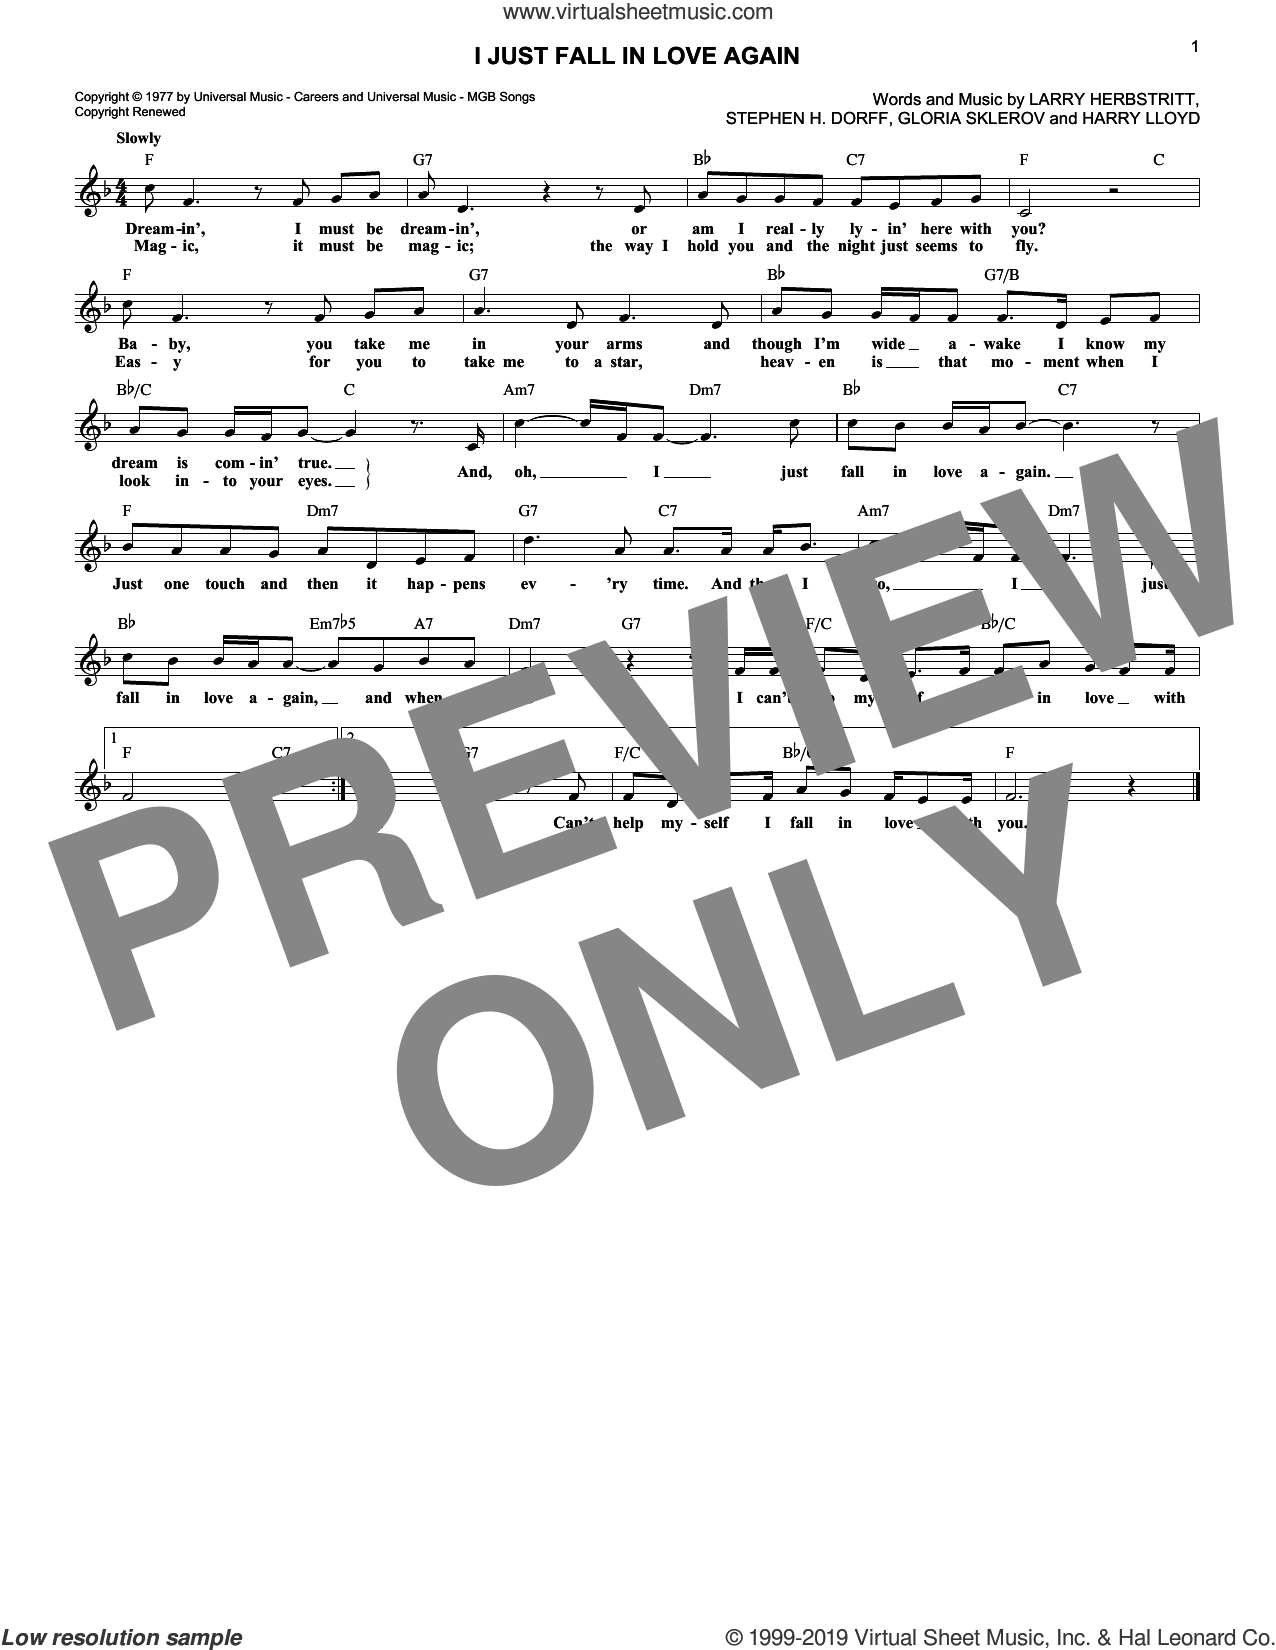 I Just Fall In Love Again sheet music for voice and other instruments (fake book) by Carpenters, Anne Murray, Gloria Sklerov, Harry Lloyd, Larry Herbstritt and Steve Dorff, intermediate skill level